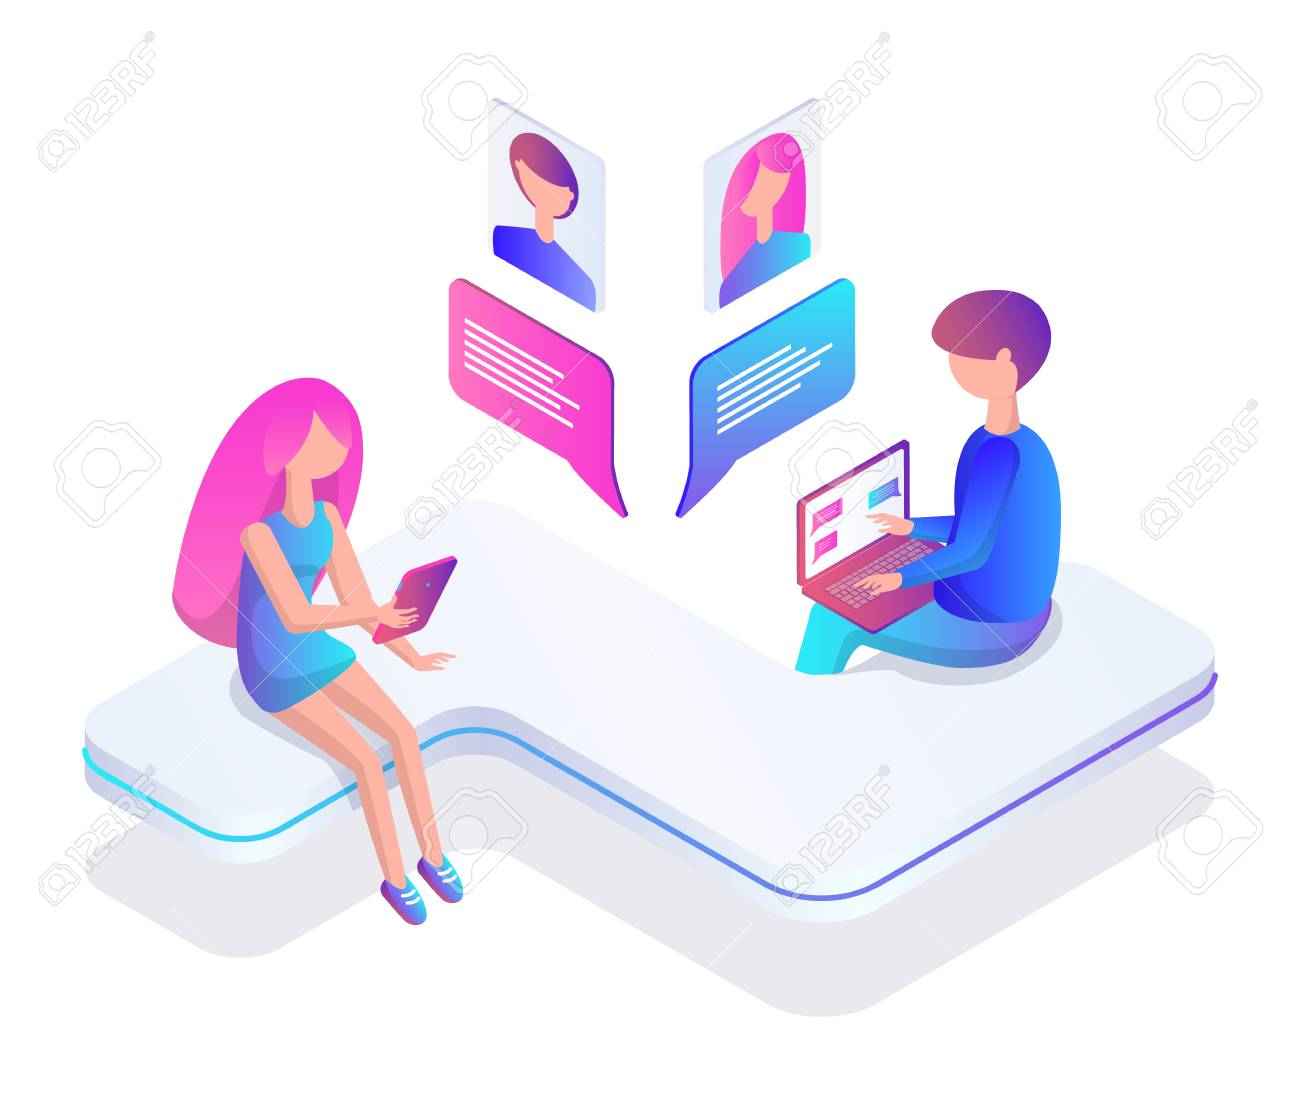 Chatting with people for free